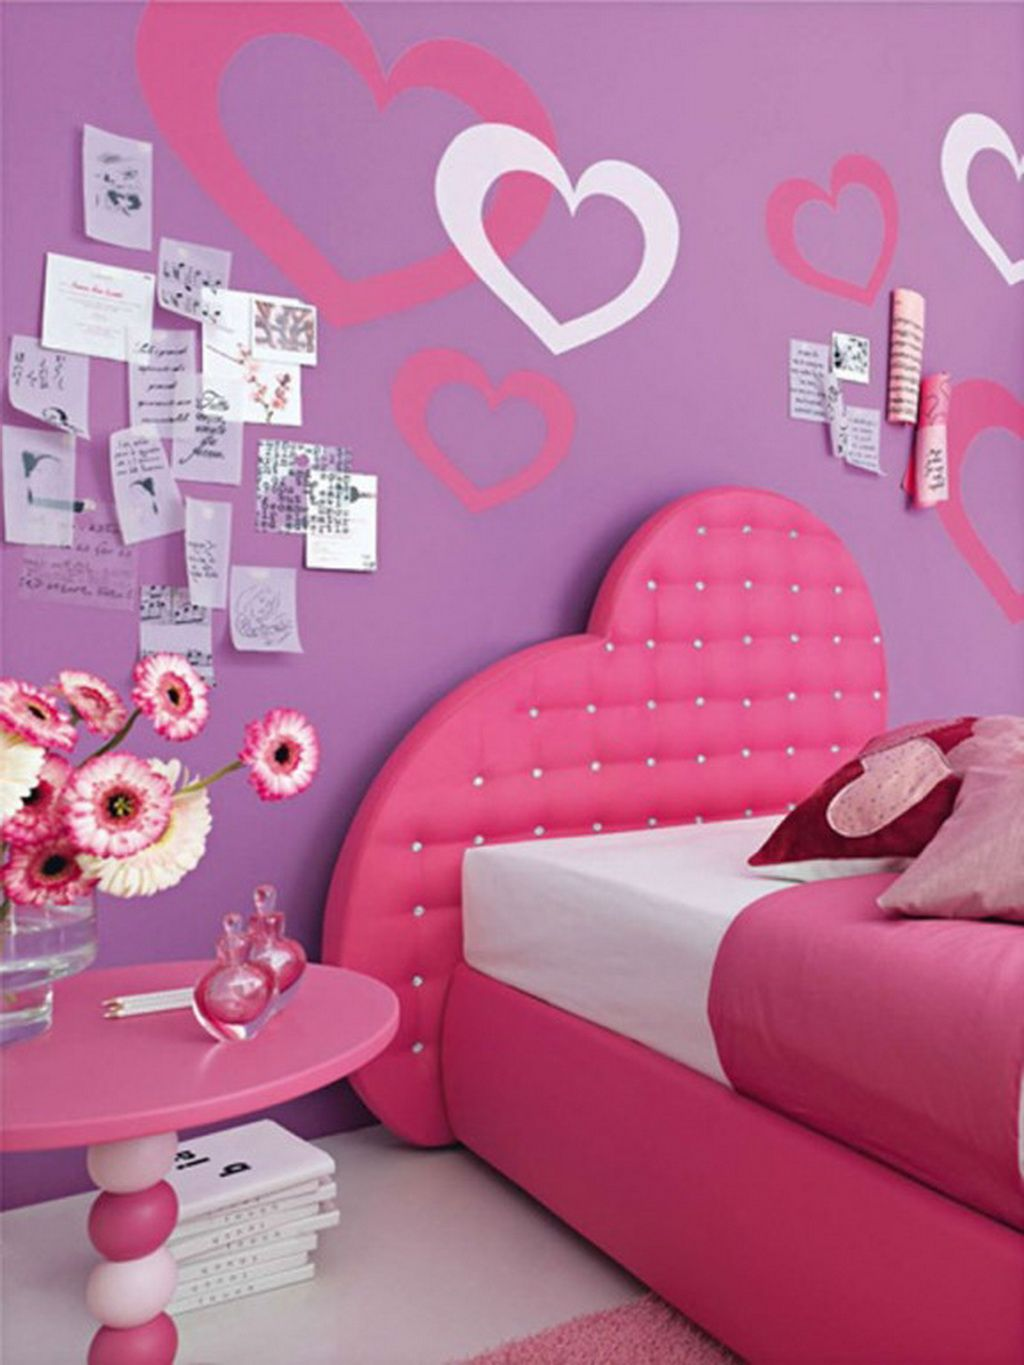 Bedroom paint ideas for girls - 17 Best Images About Bedroom Ideas For Young Women On Pinterest 17 Best Images About Bedroom